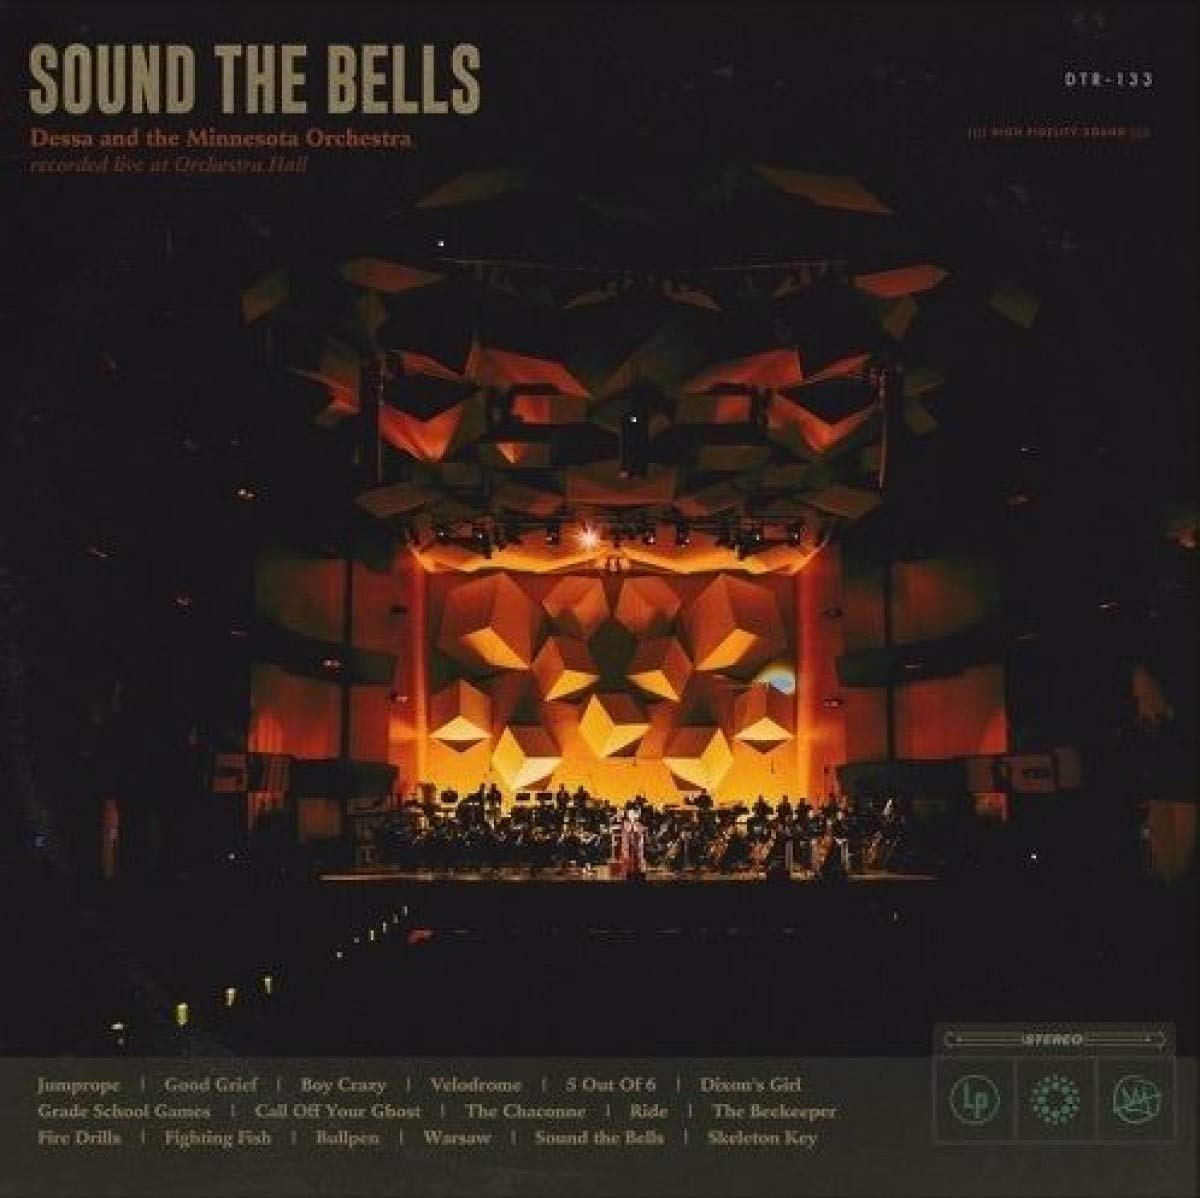 Dessa - Sound The Bells: Recorded Live At Orchestra Hall [LP]